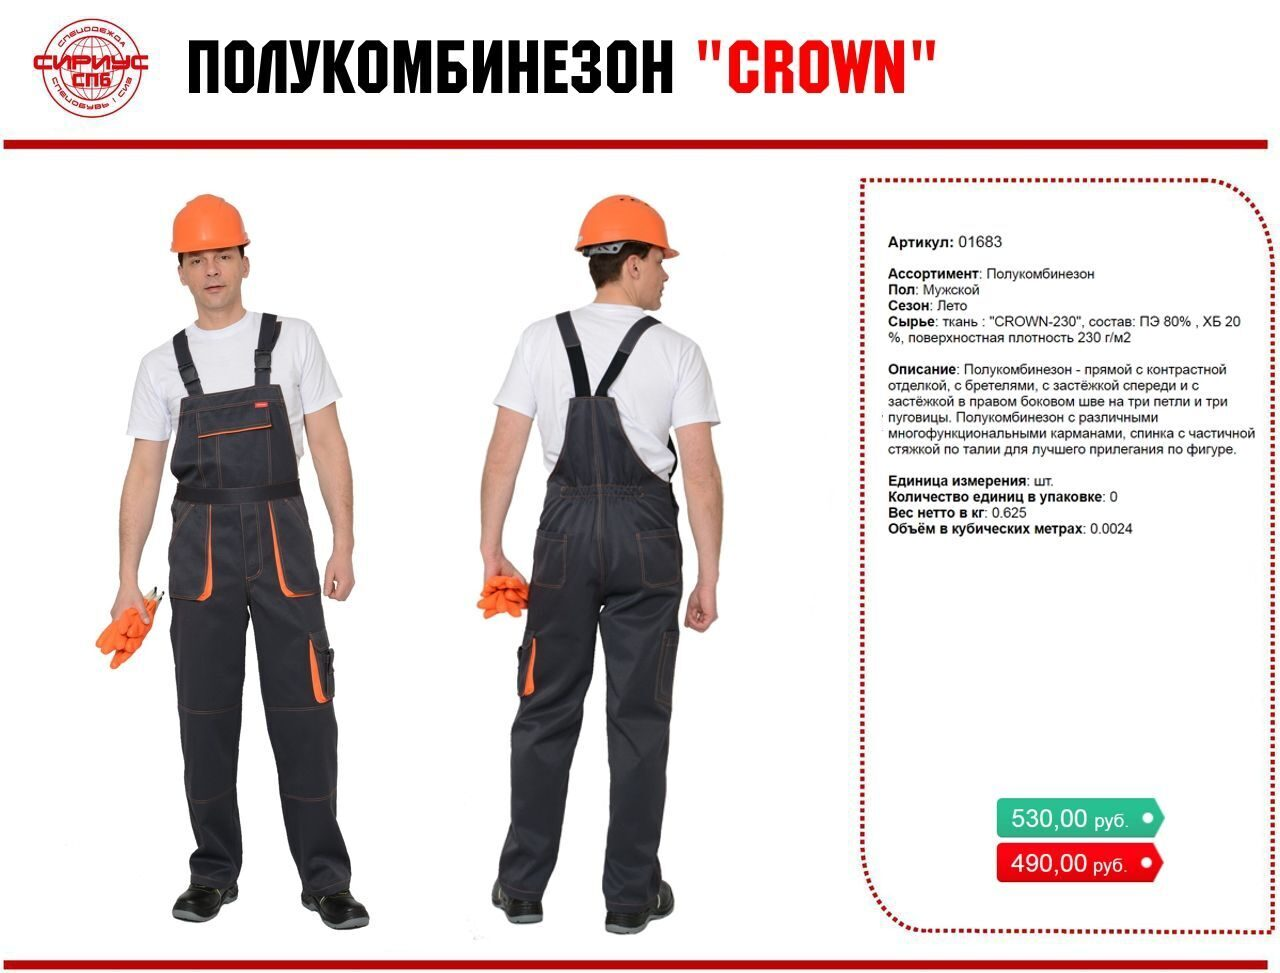 Crown news_1